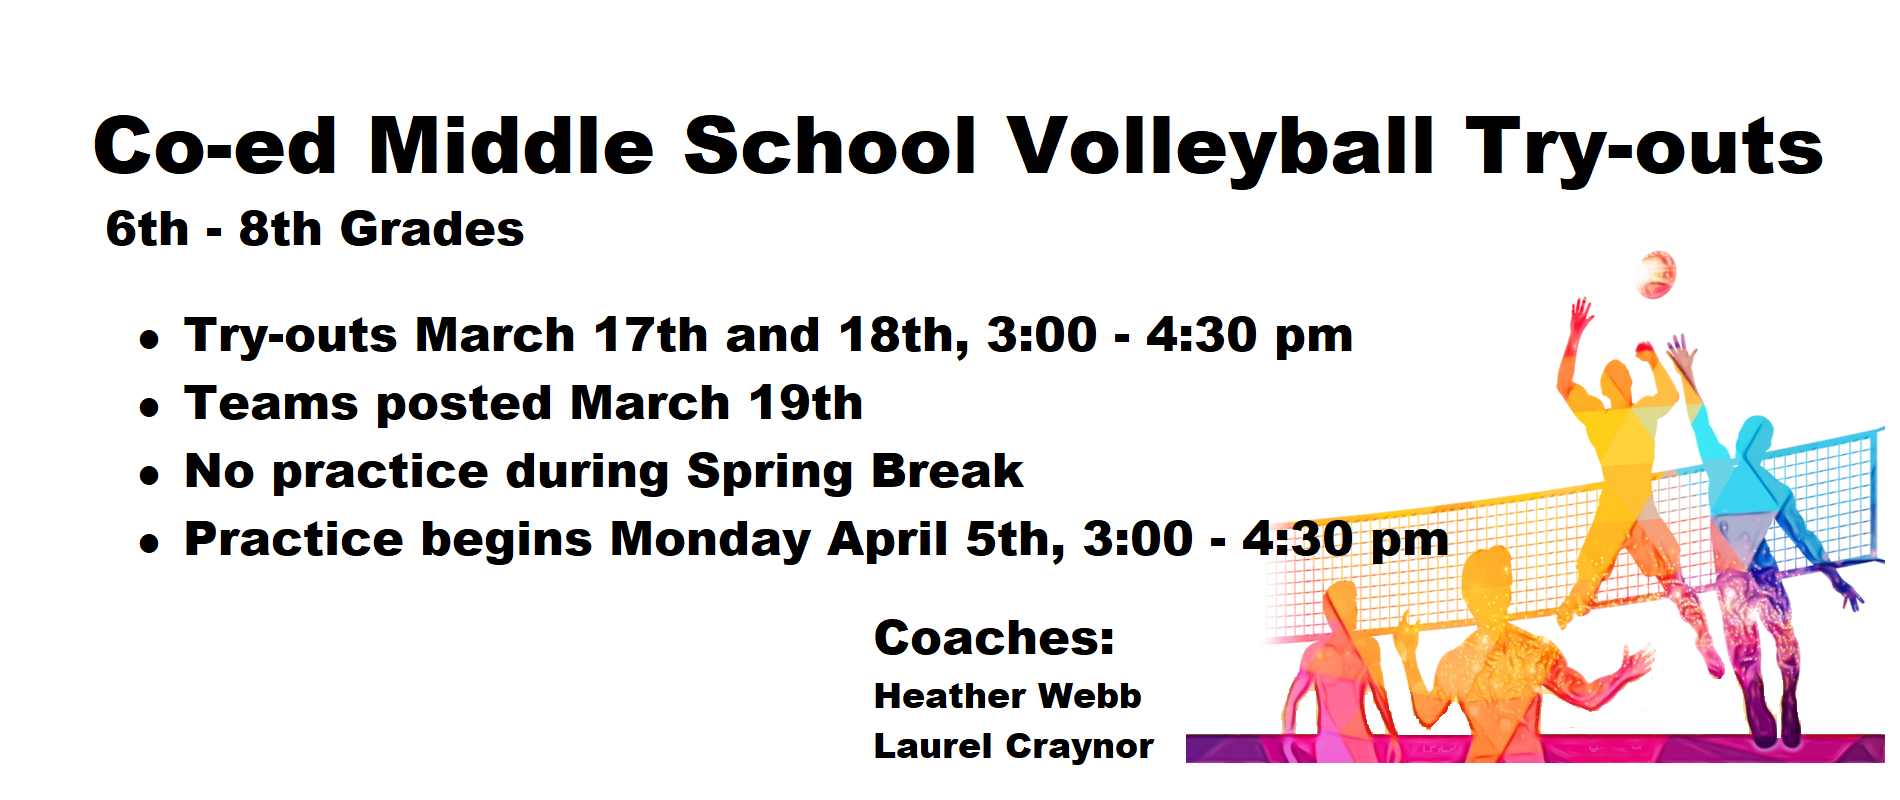 Co-Ed Middle School Volleyball Try-outs